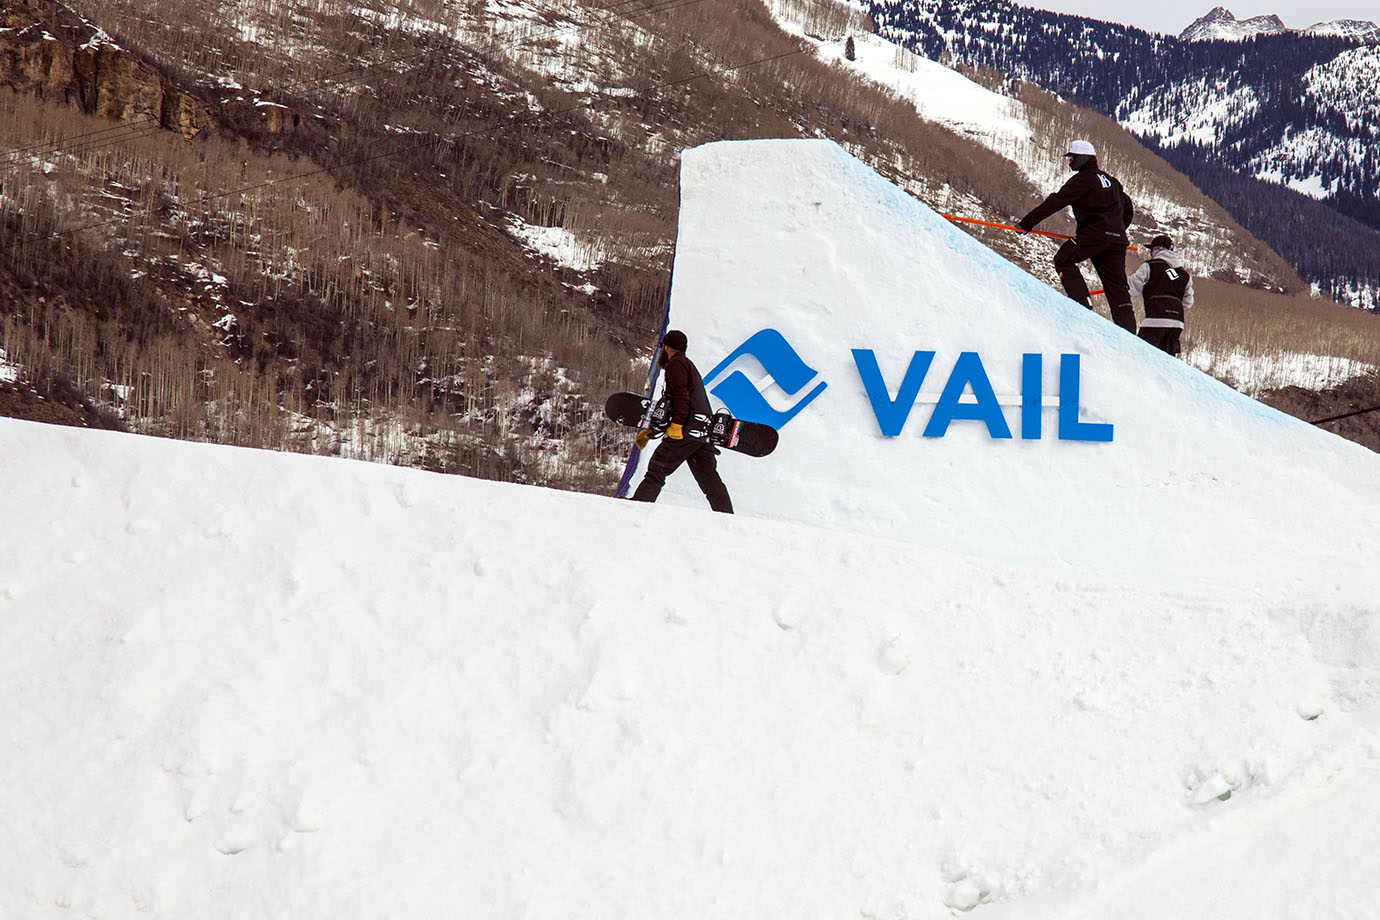 The second of three jumps of the Burton U.S. Open Slopestyle course bears the name of the world famous ski town that has hosted the annual event since it moved to Colorado from Vermont.